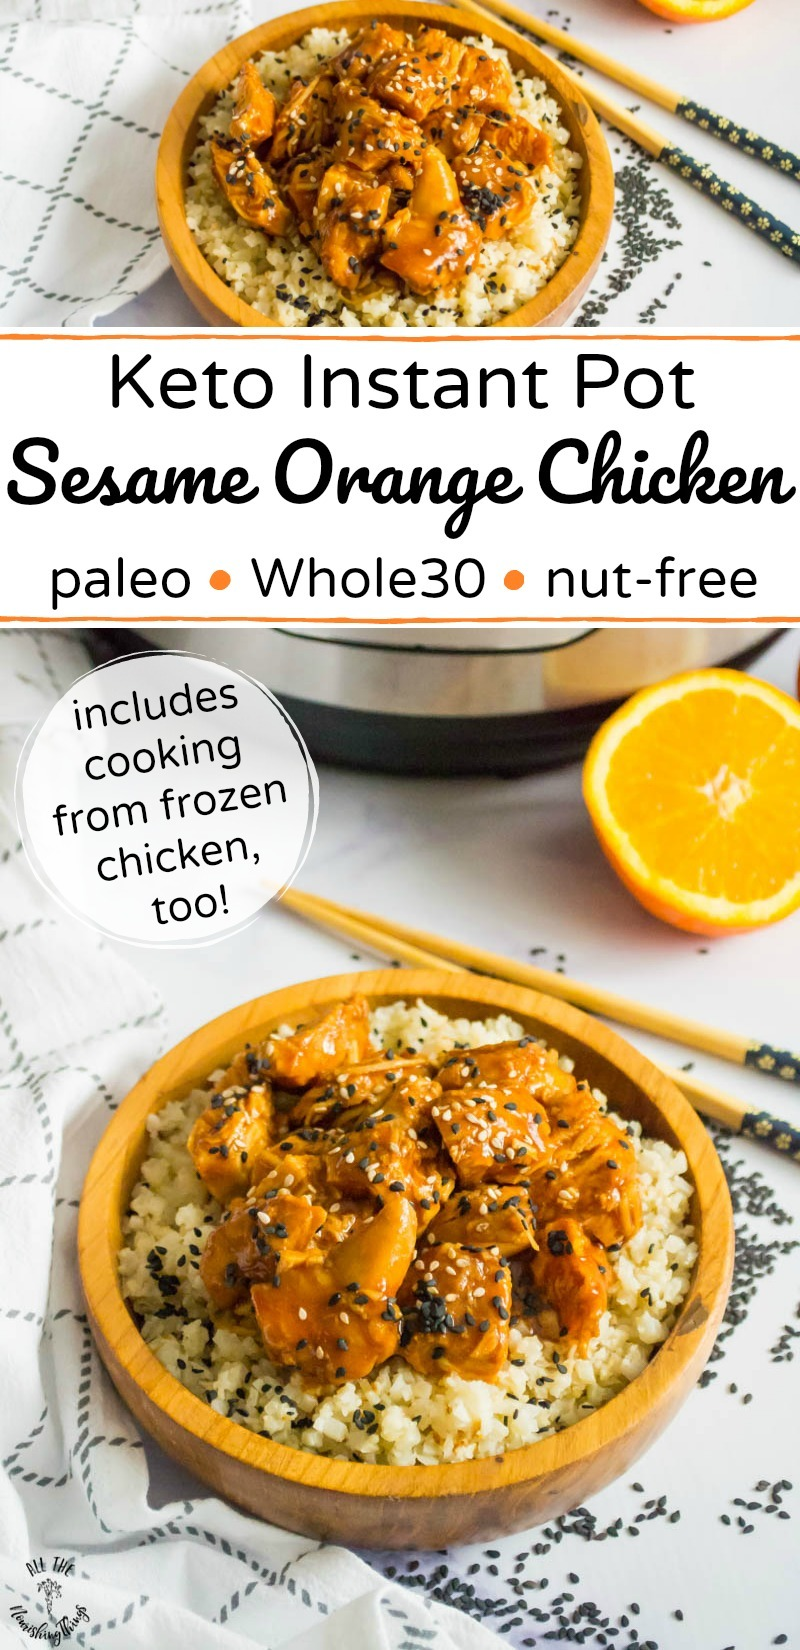 2 images of keto instant pot sesame orange chicken in wooden bowl with chopsticks and text overlay